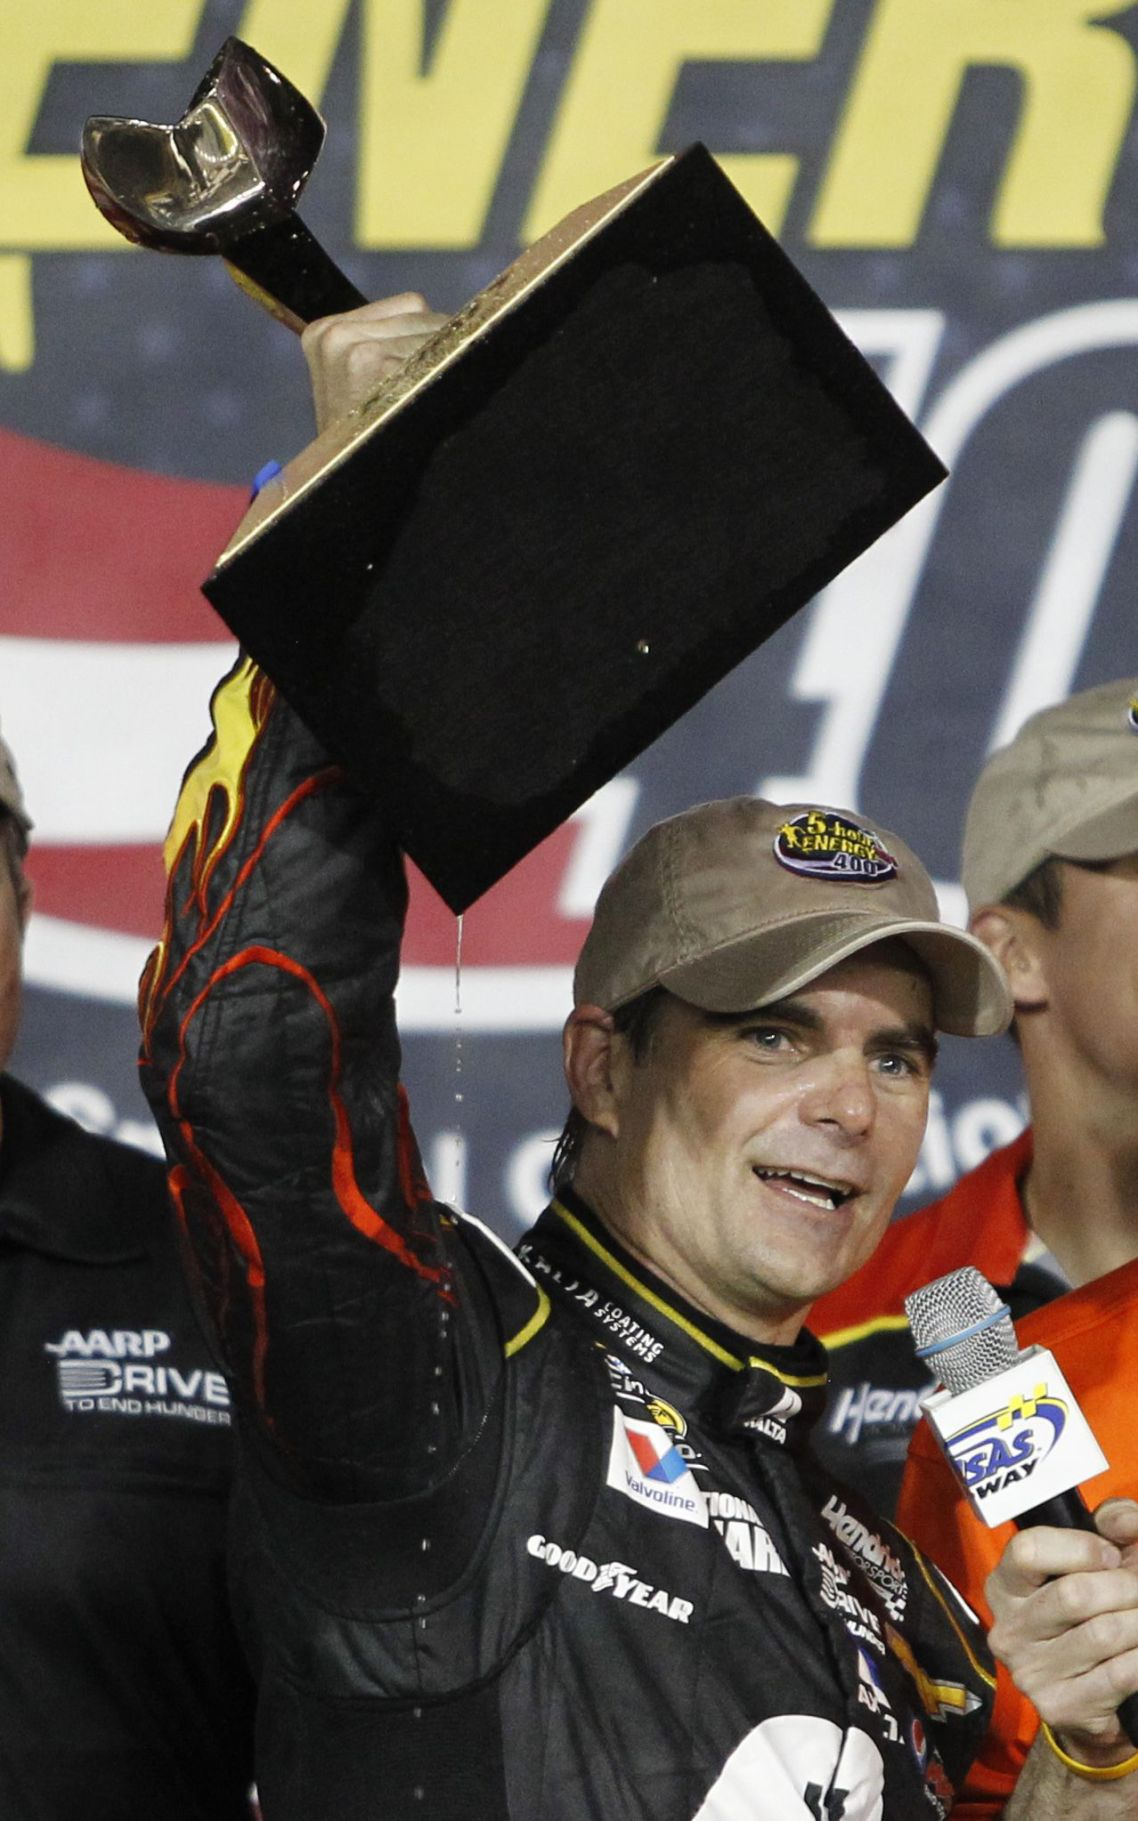 Gordon wins at Kansas Hendrick driver is 10th different winner this season